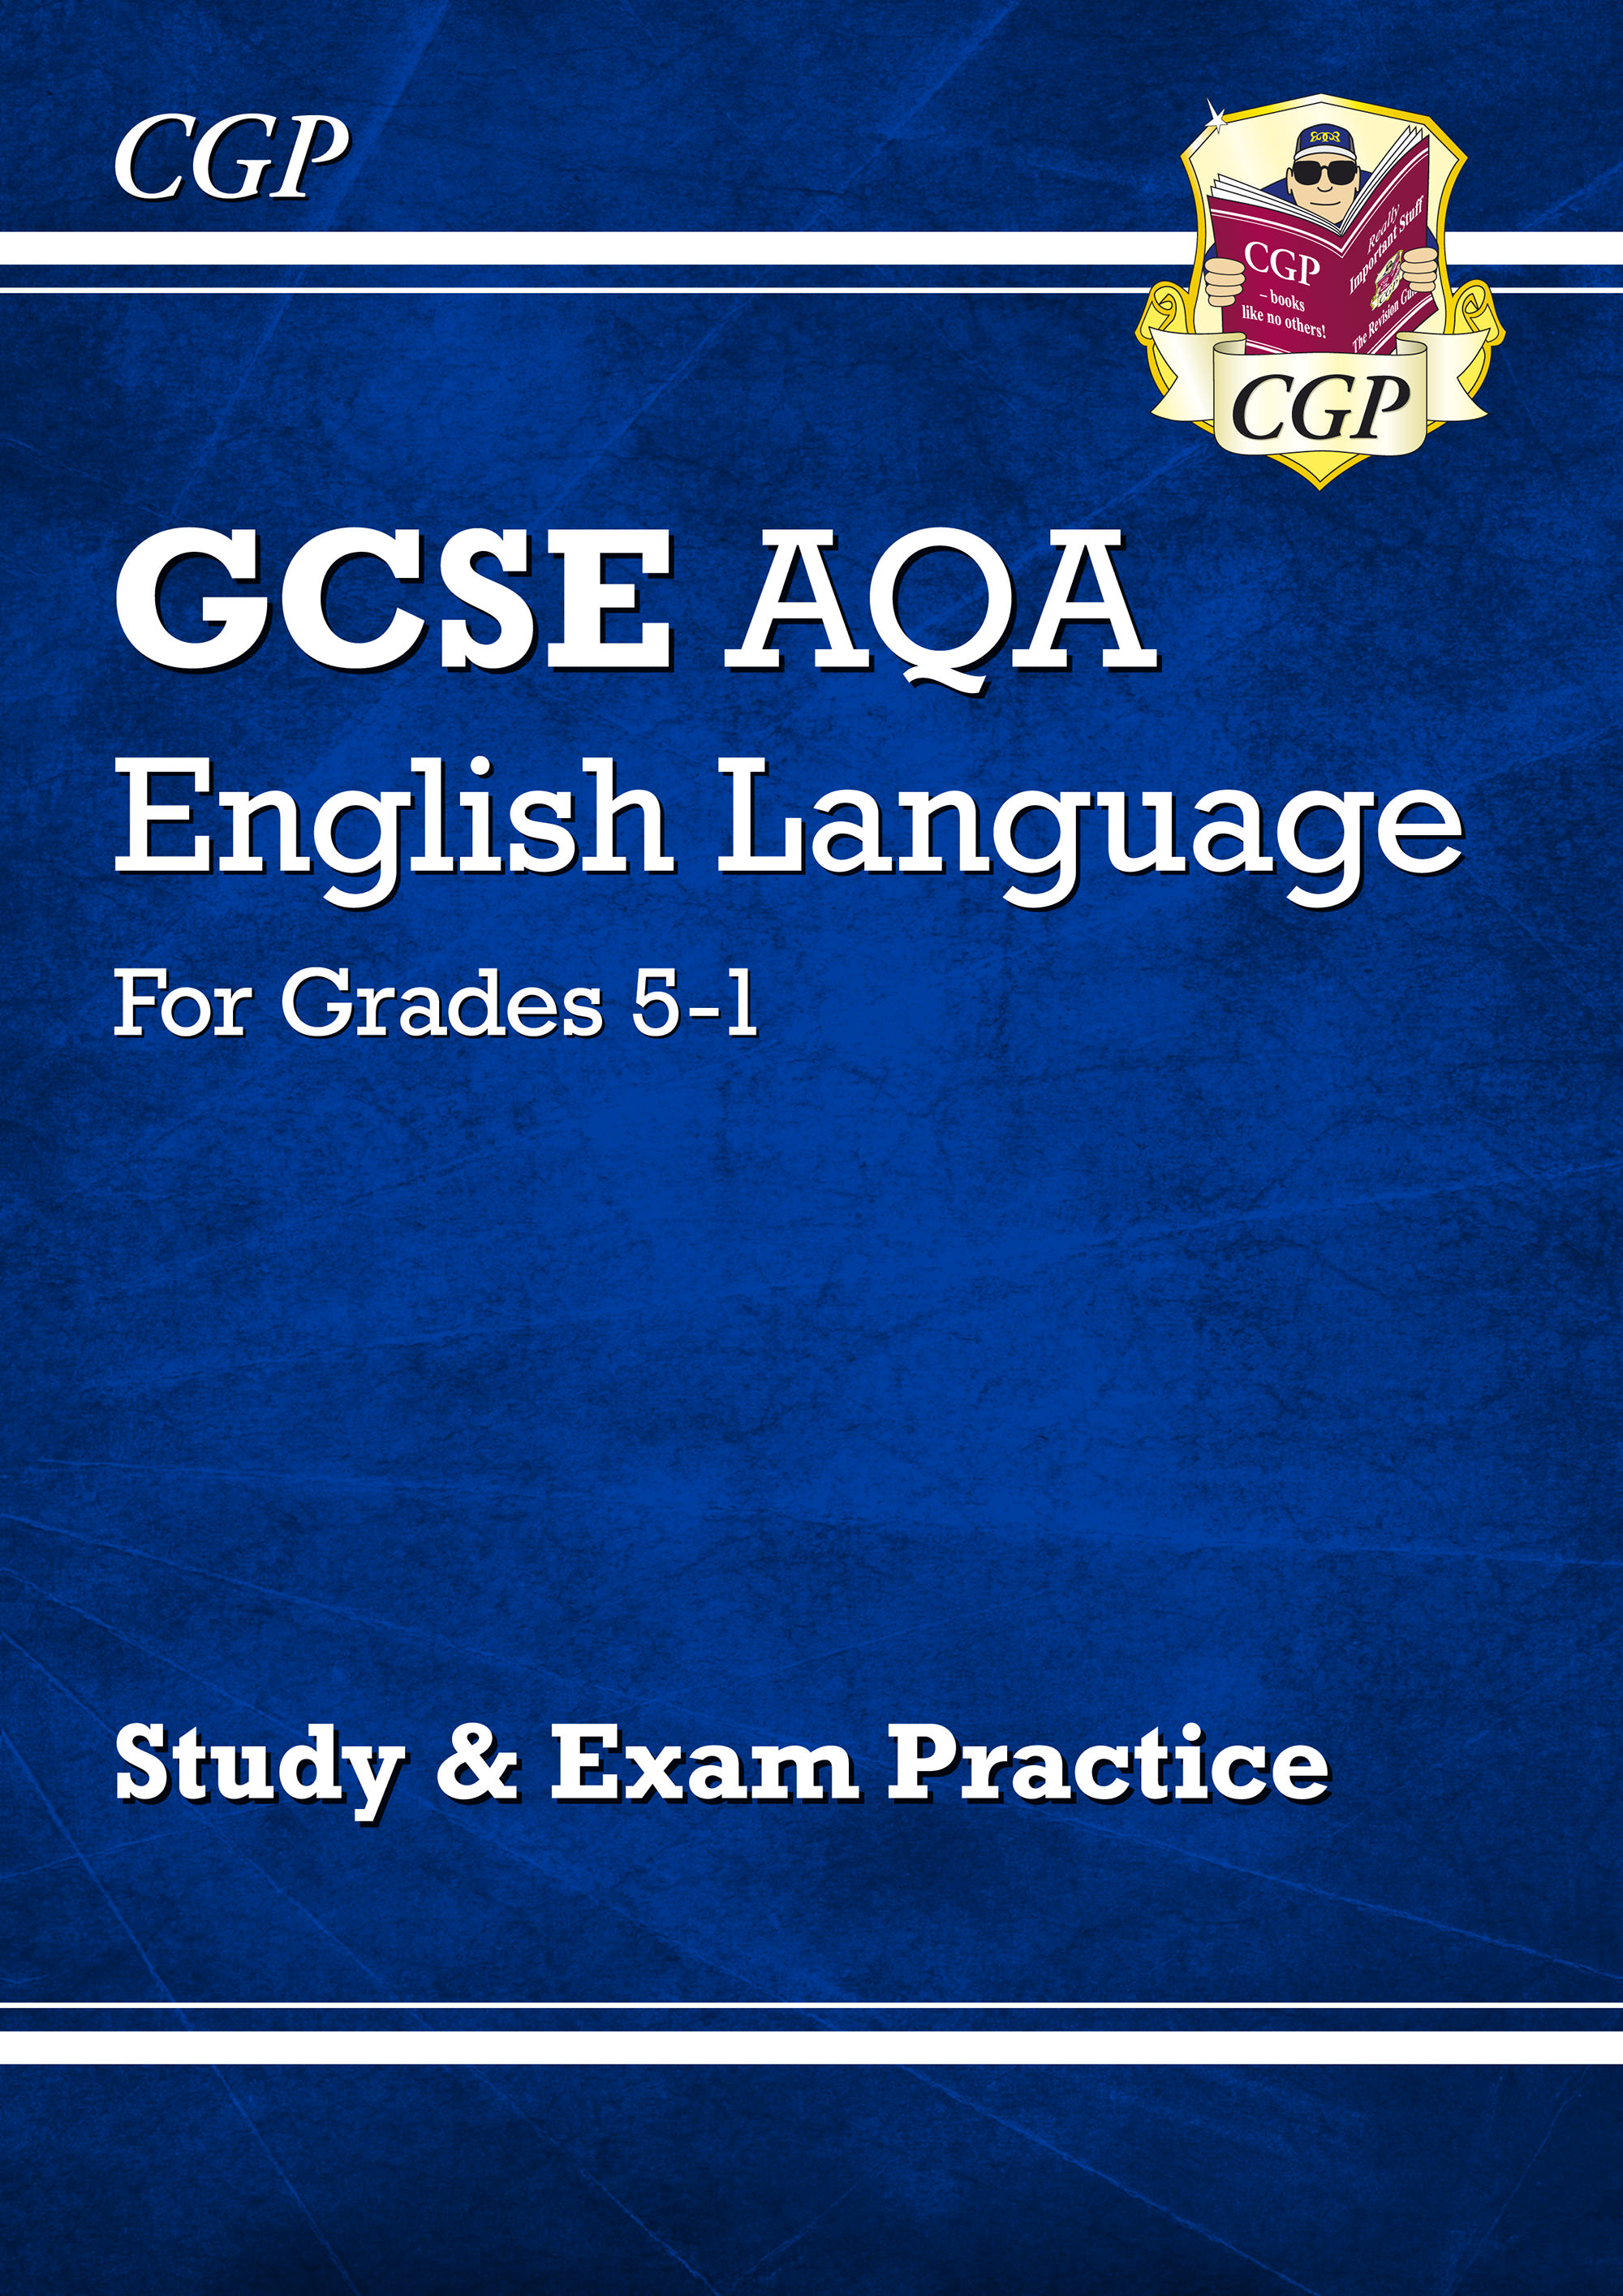 ENAFR41 - GCSE English Language AQA Study & Exam Practice: Grades 5-1